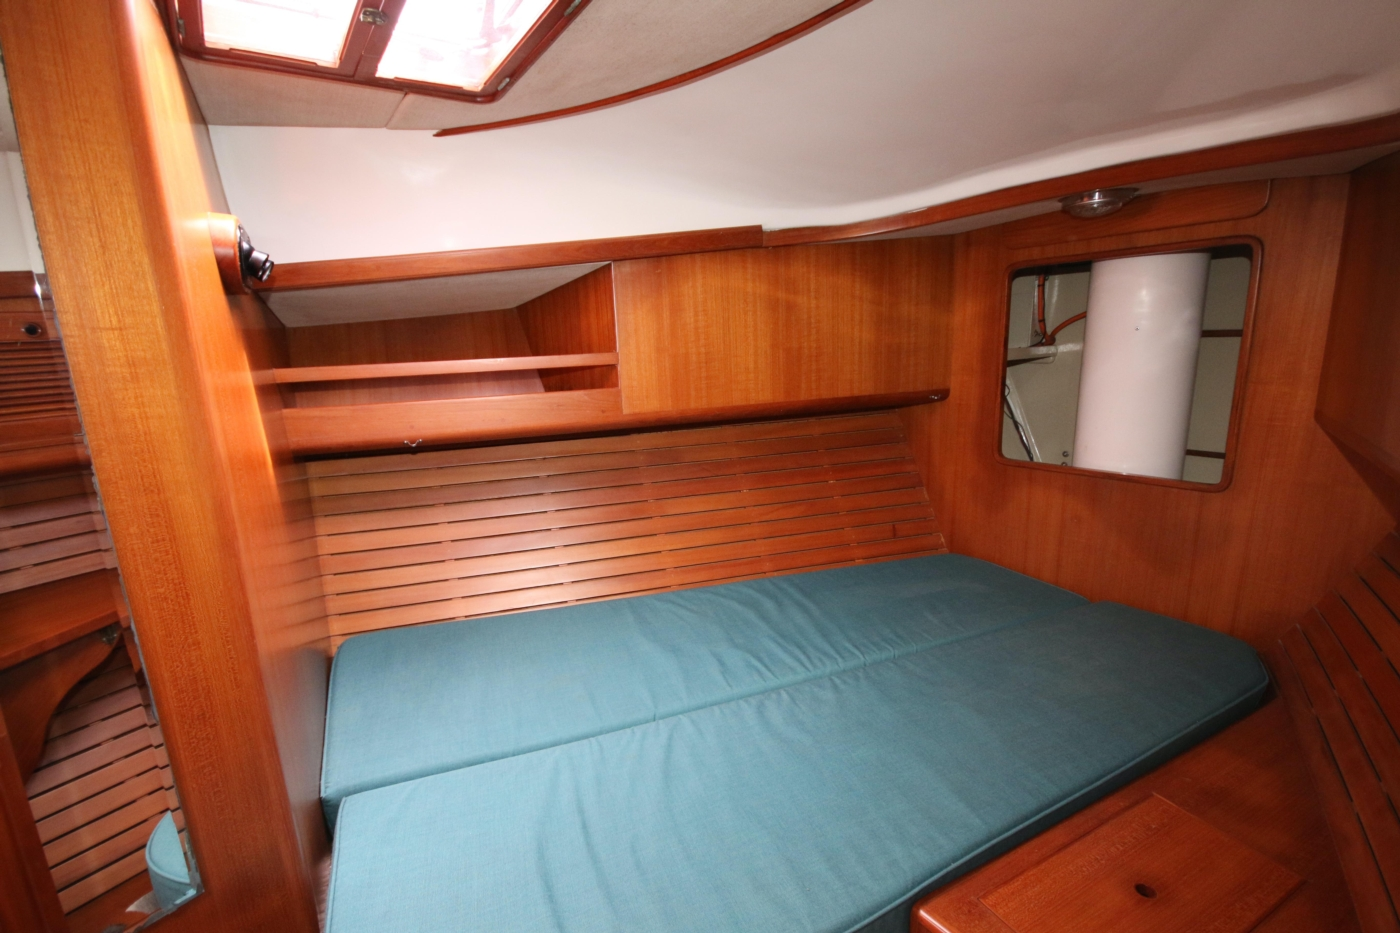 1996 Tanton 45 Offshore, Forward berth